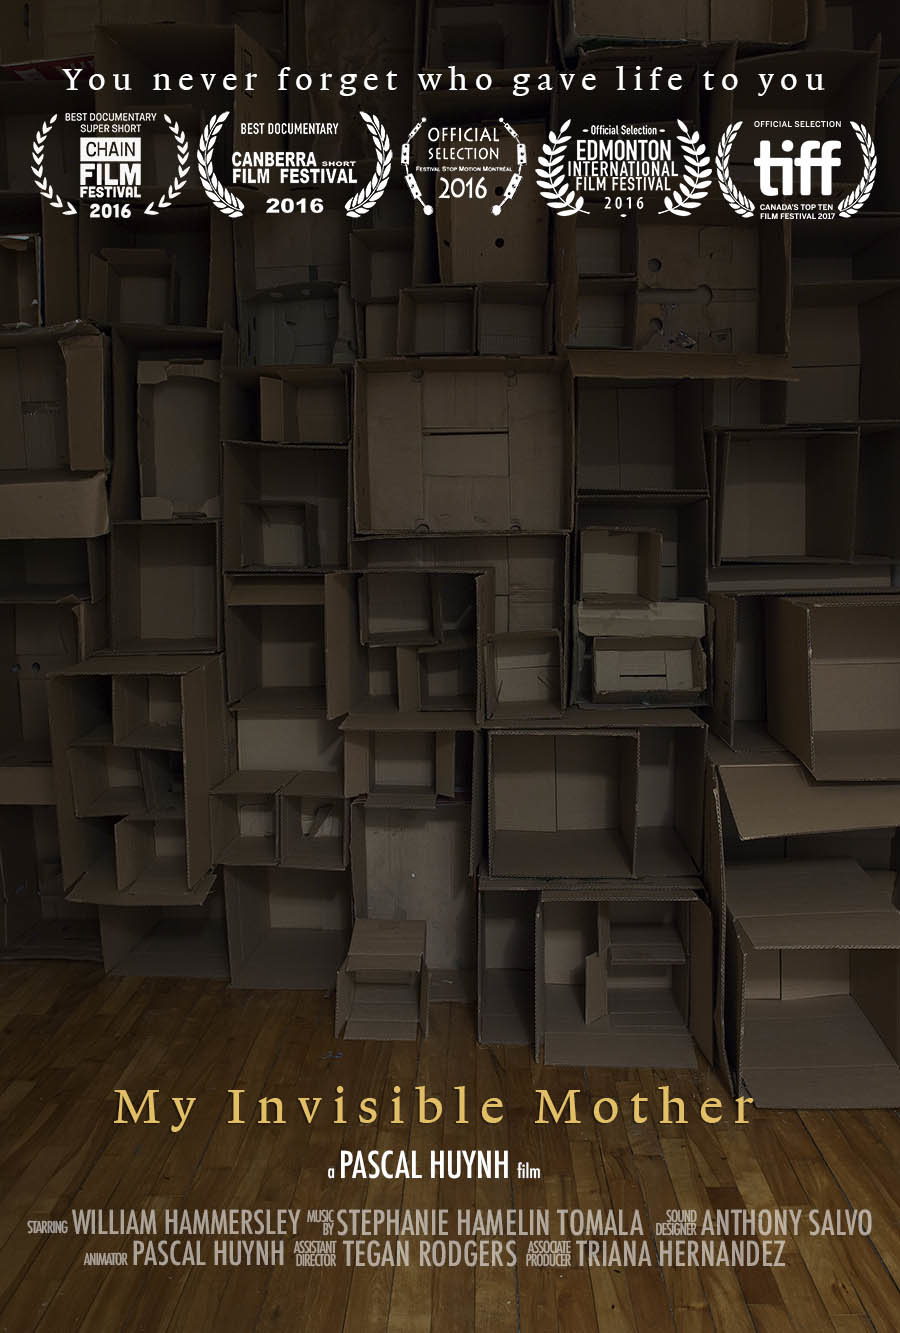 PascalHuynh_MyInvisibleMother_VerticalPoster_ENG_Web_900.jpg